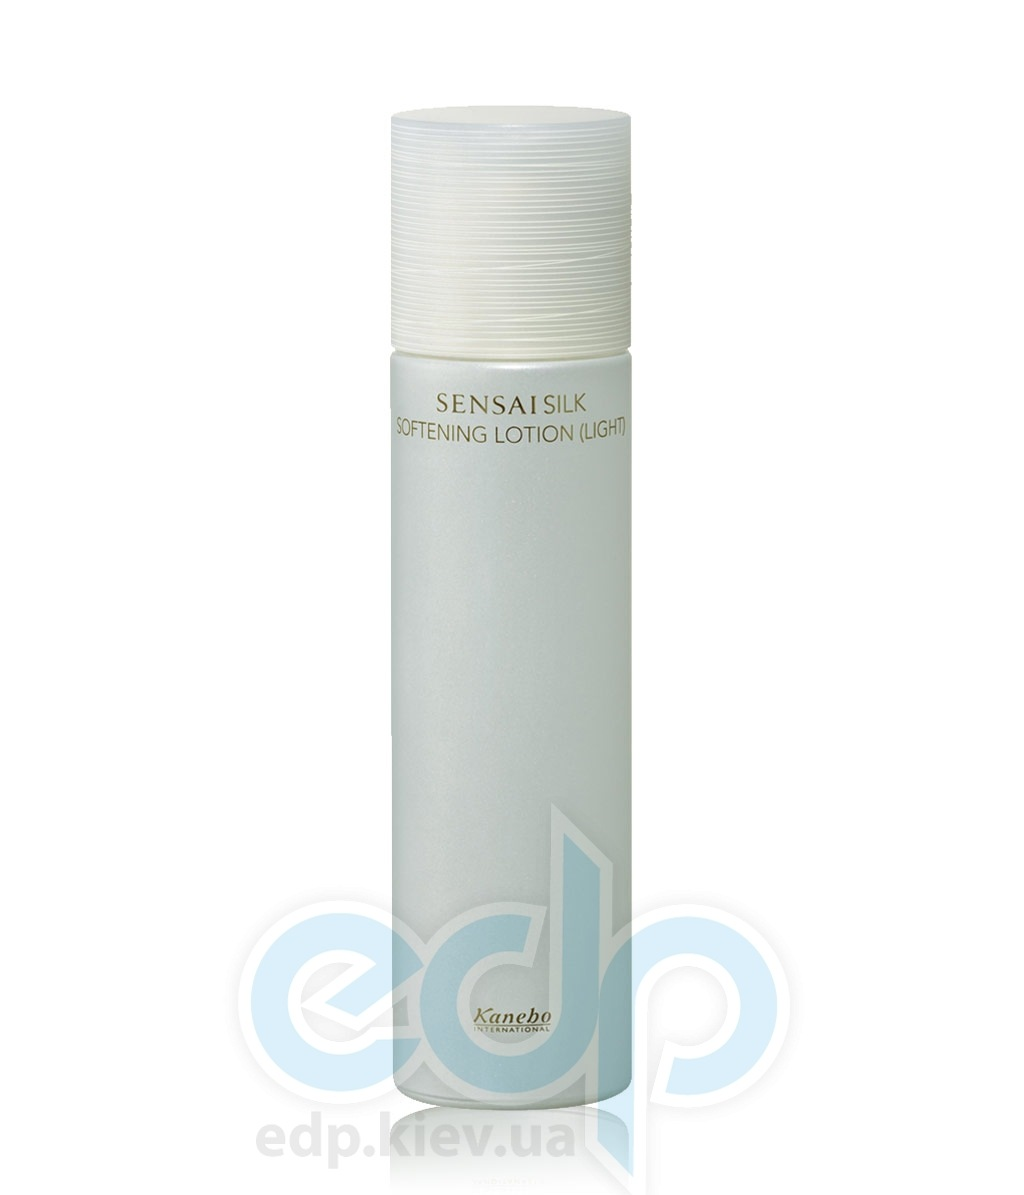 Kanebo Лосьон увлажняющий - Sensai Silk Softenig Lotion - 125 ml